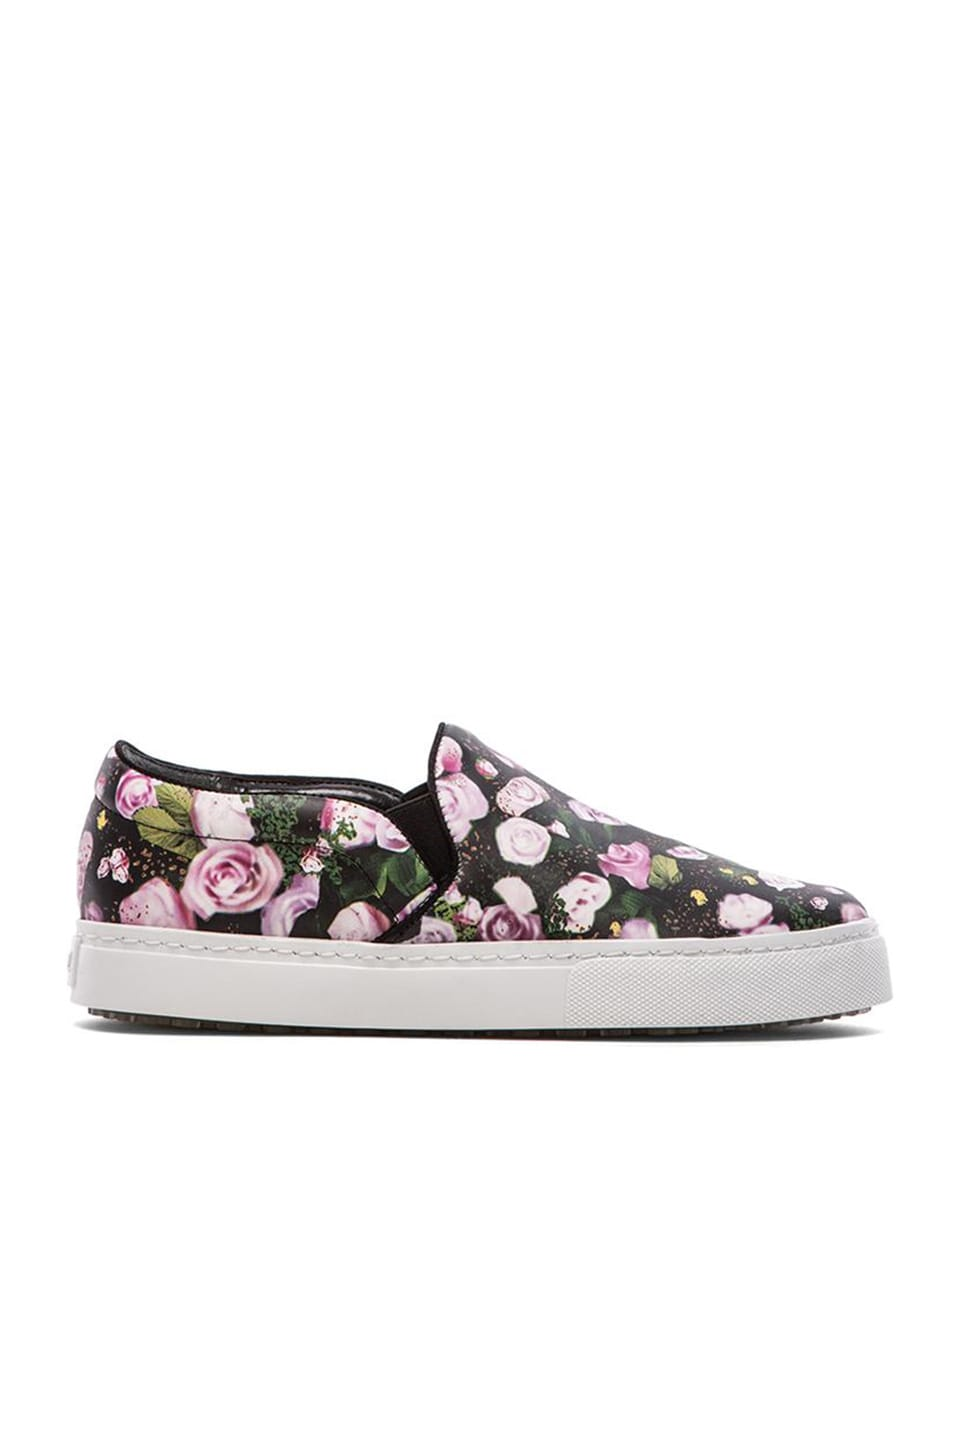 Schutz Rosa Sneaker in Flower Mix & Black